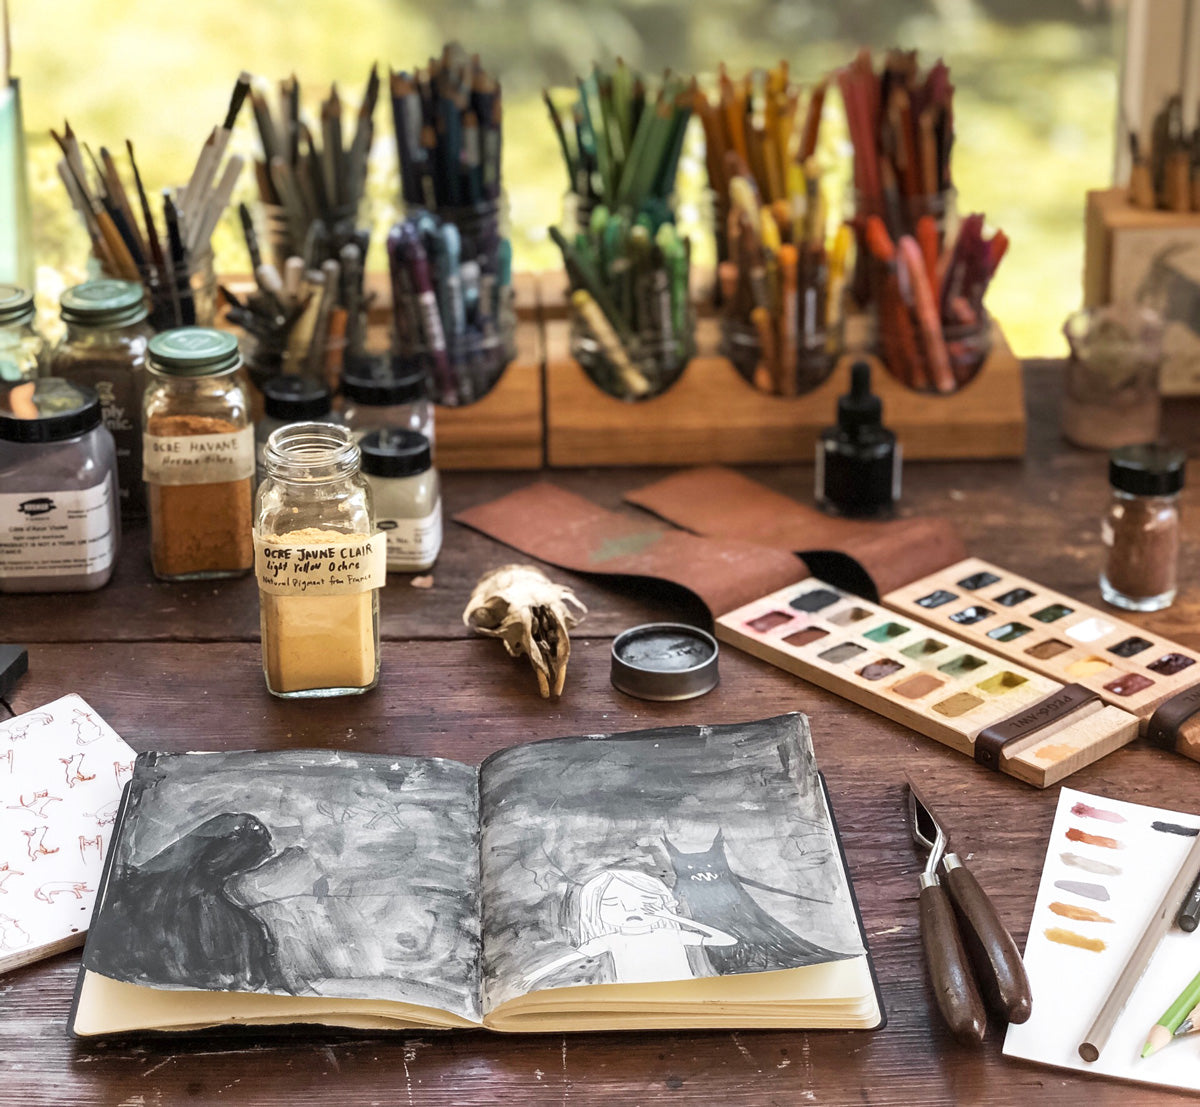 New Iris Painter's Palette and Orra Sketchbook by Peg and Awl